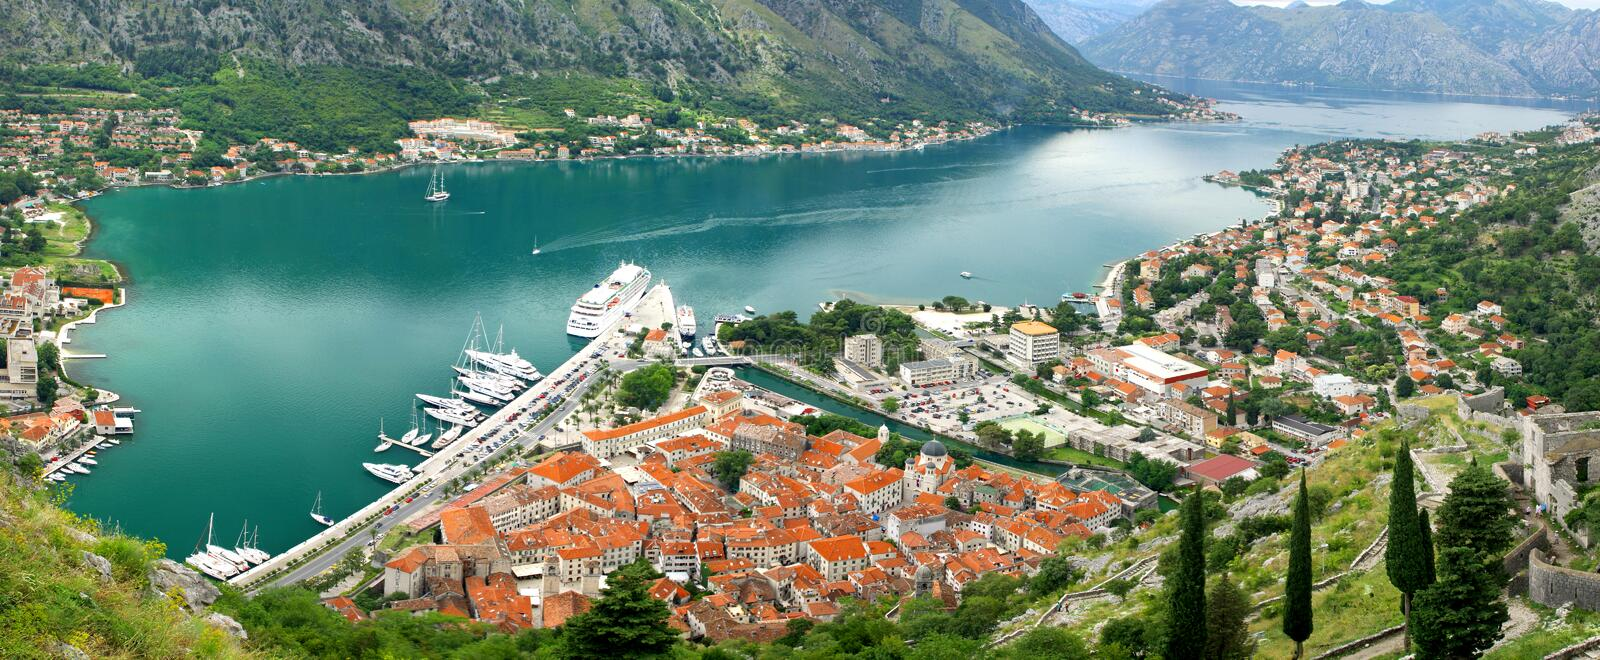 Boka-Kotorska bay, Montenegro. Panoramic view of Boka-Kotorska bay and Kotor city, Montenegro stock photos